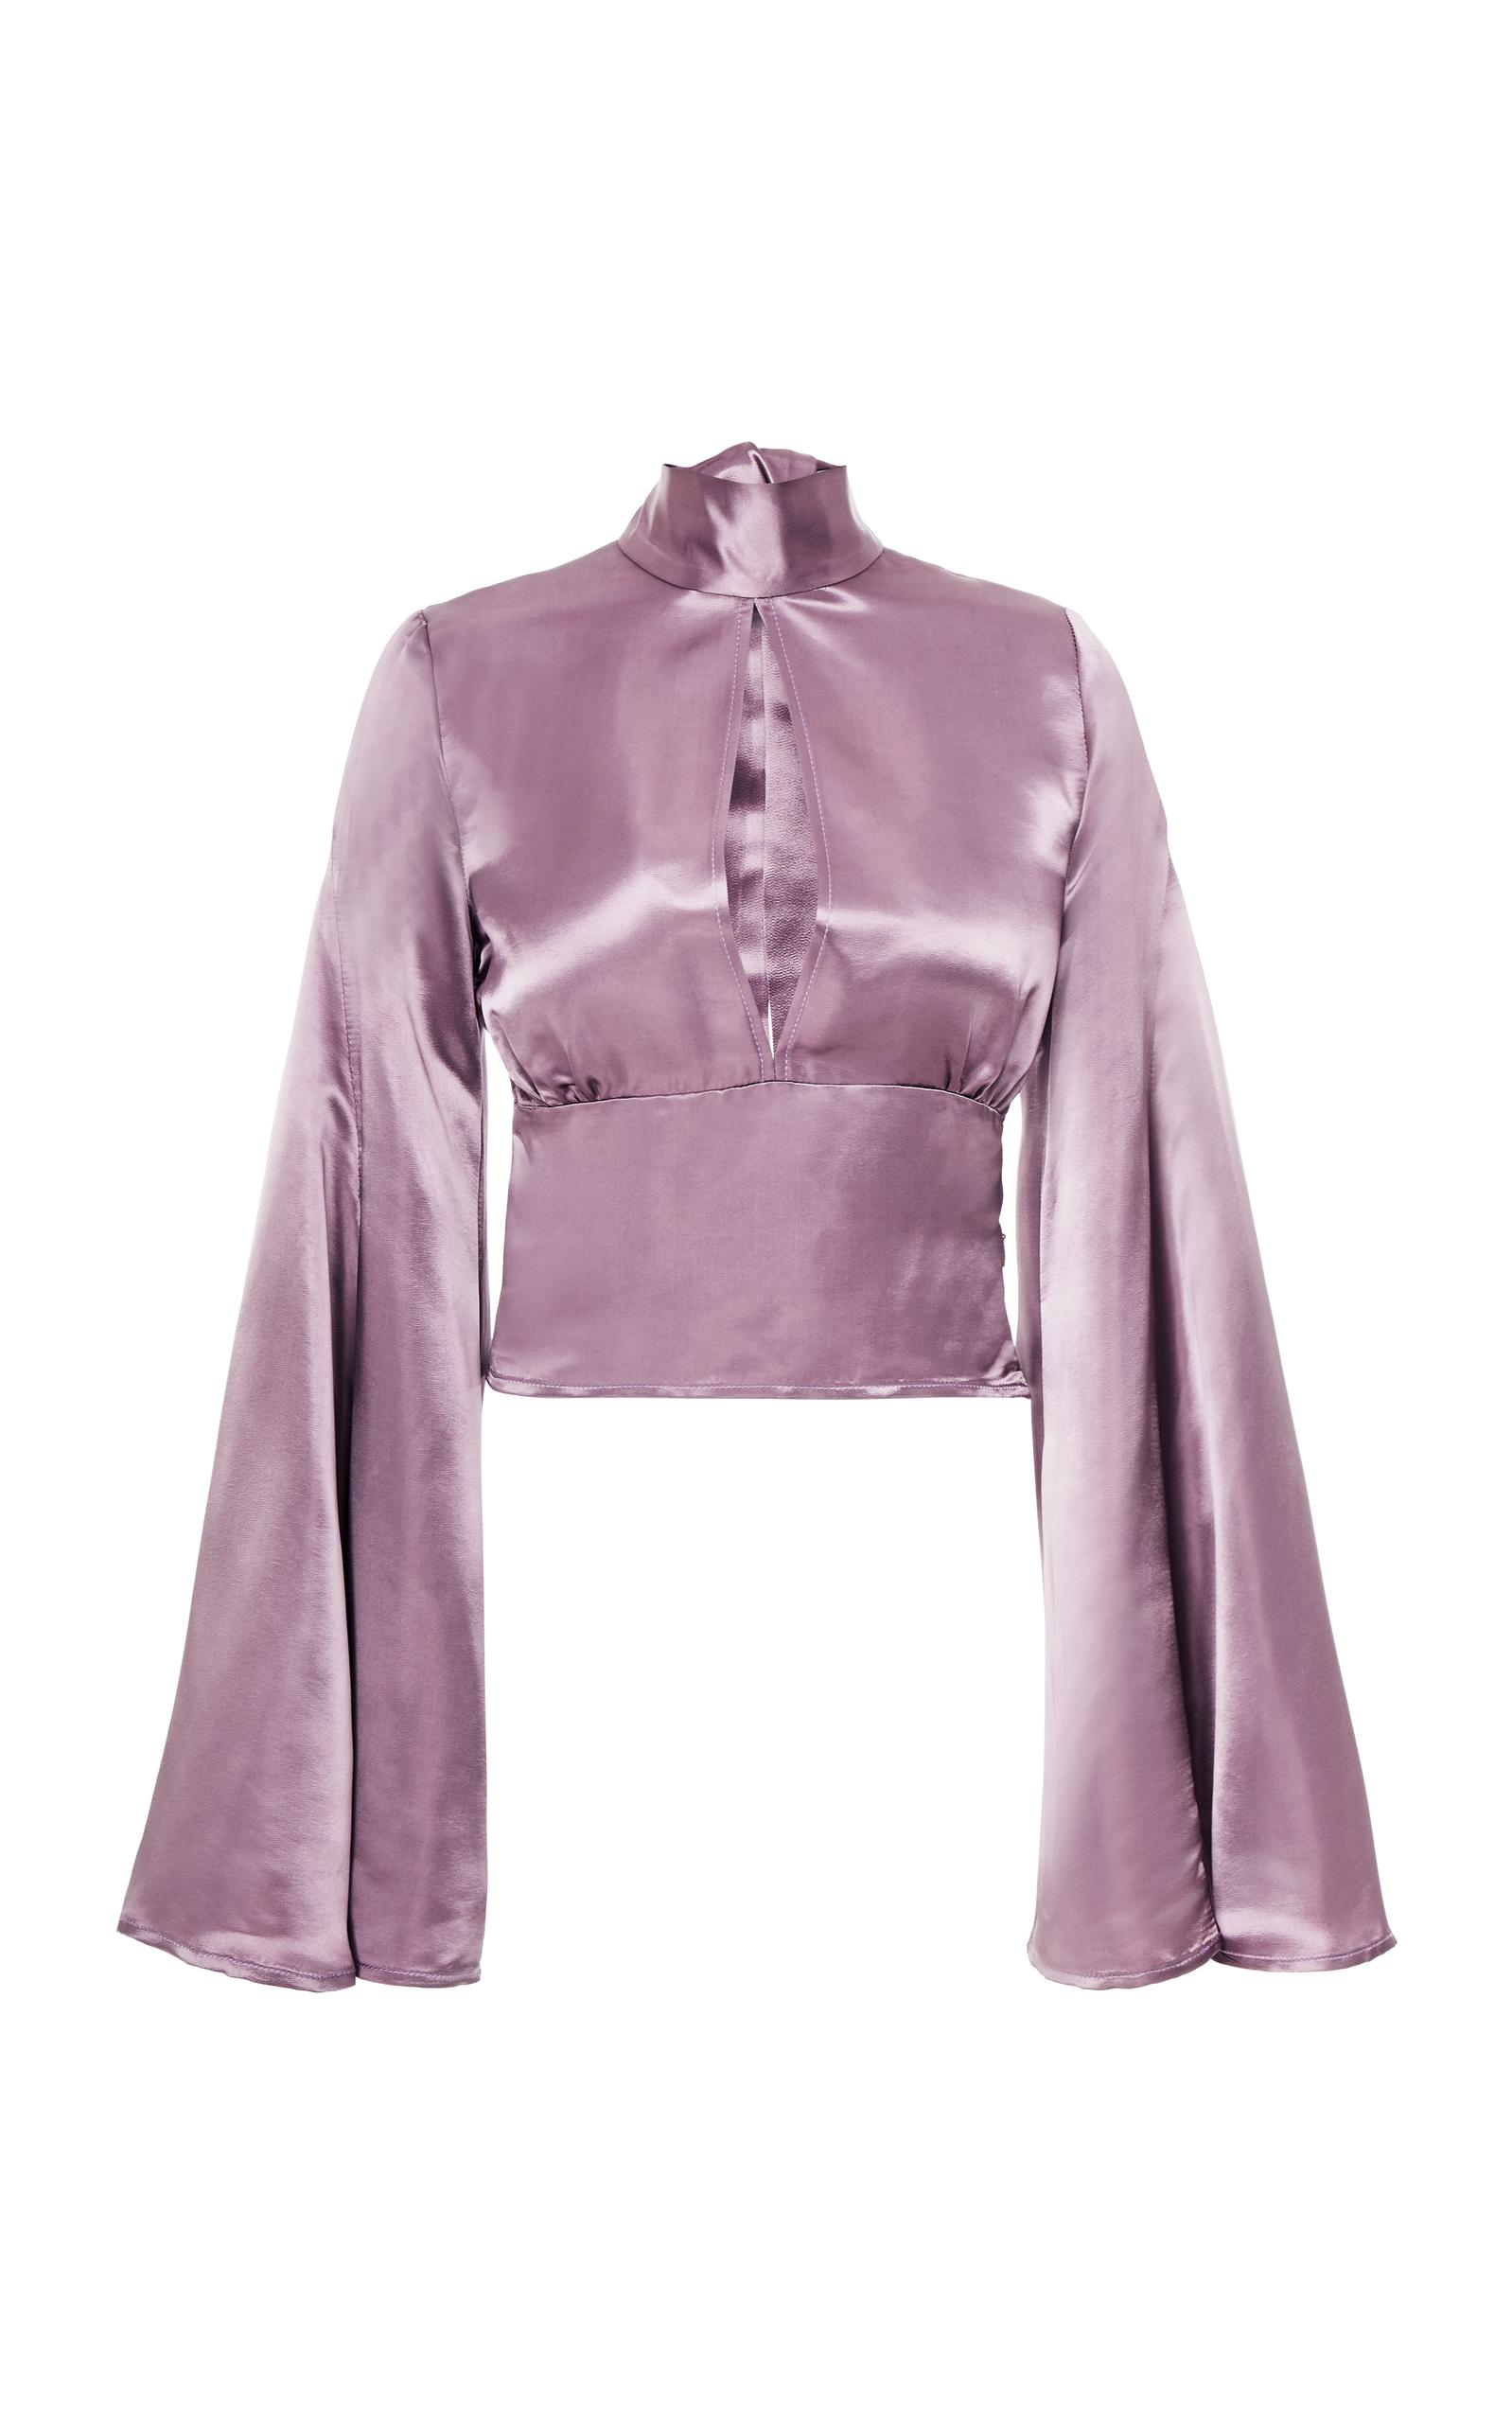 Beaufille Canes Satin Blouse In Purple